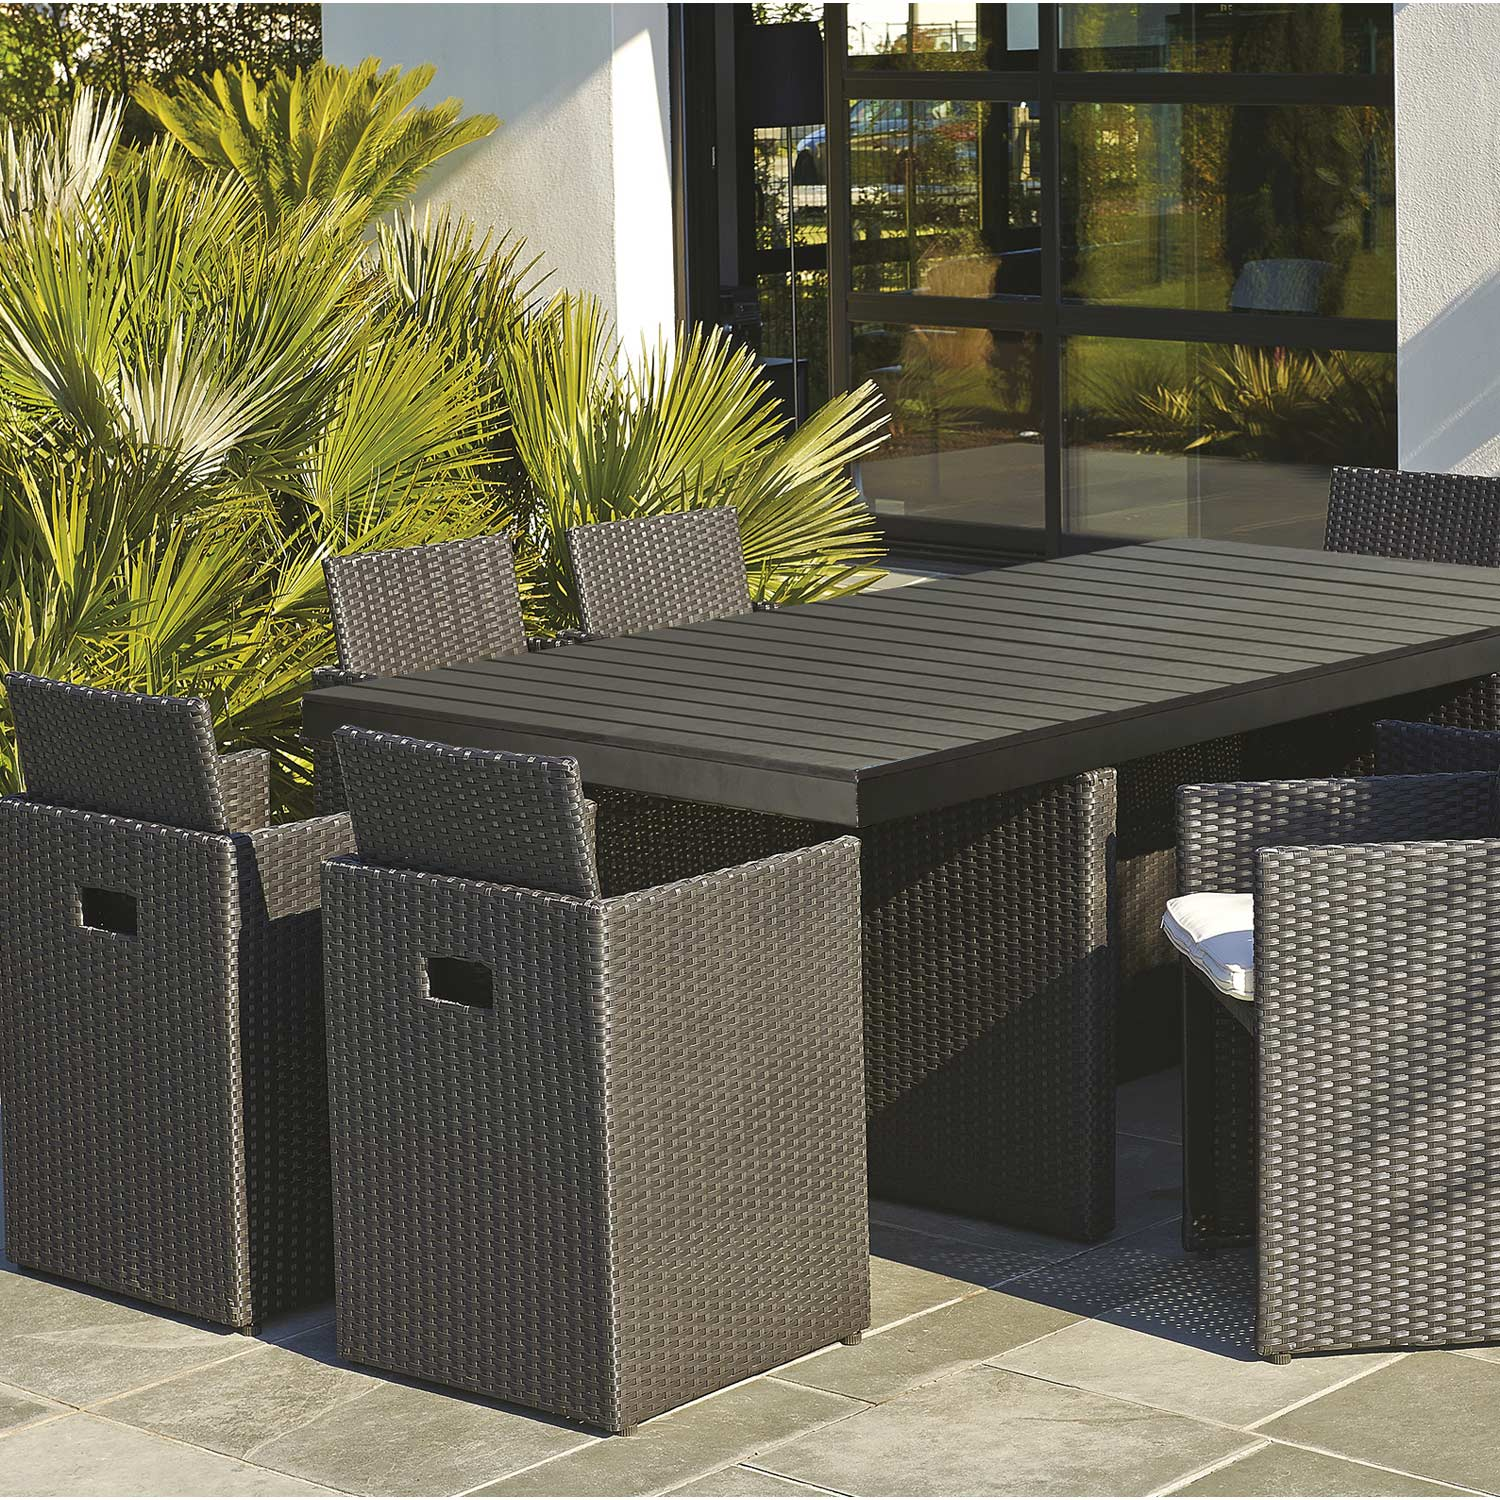 Salon de jardin encastrable r sine tress e noir 1 table 8 fauteuils leroy - Leroy merlin table jardin ...